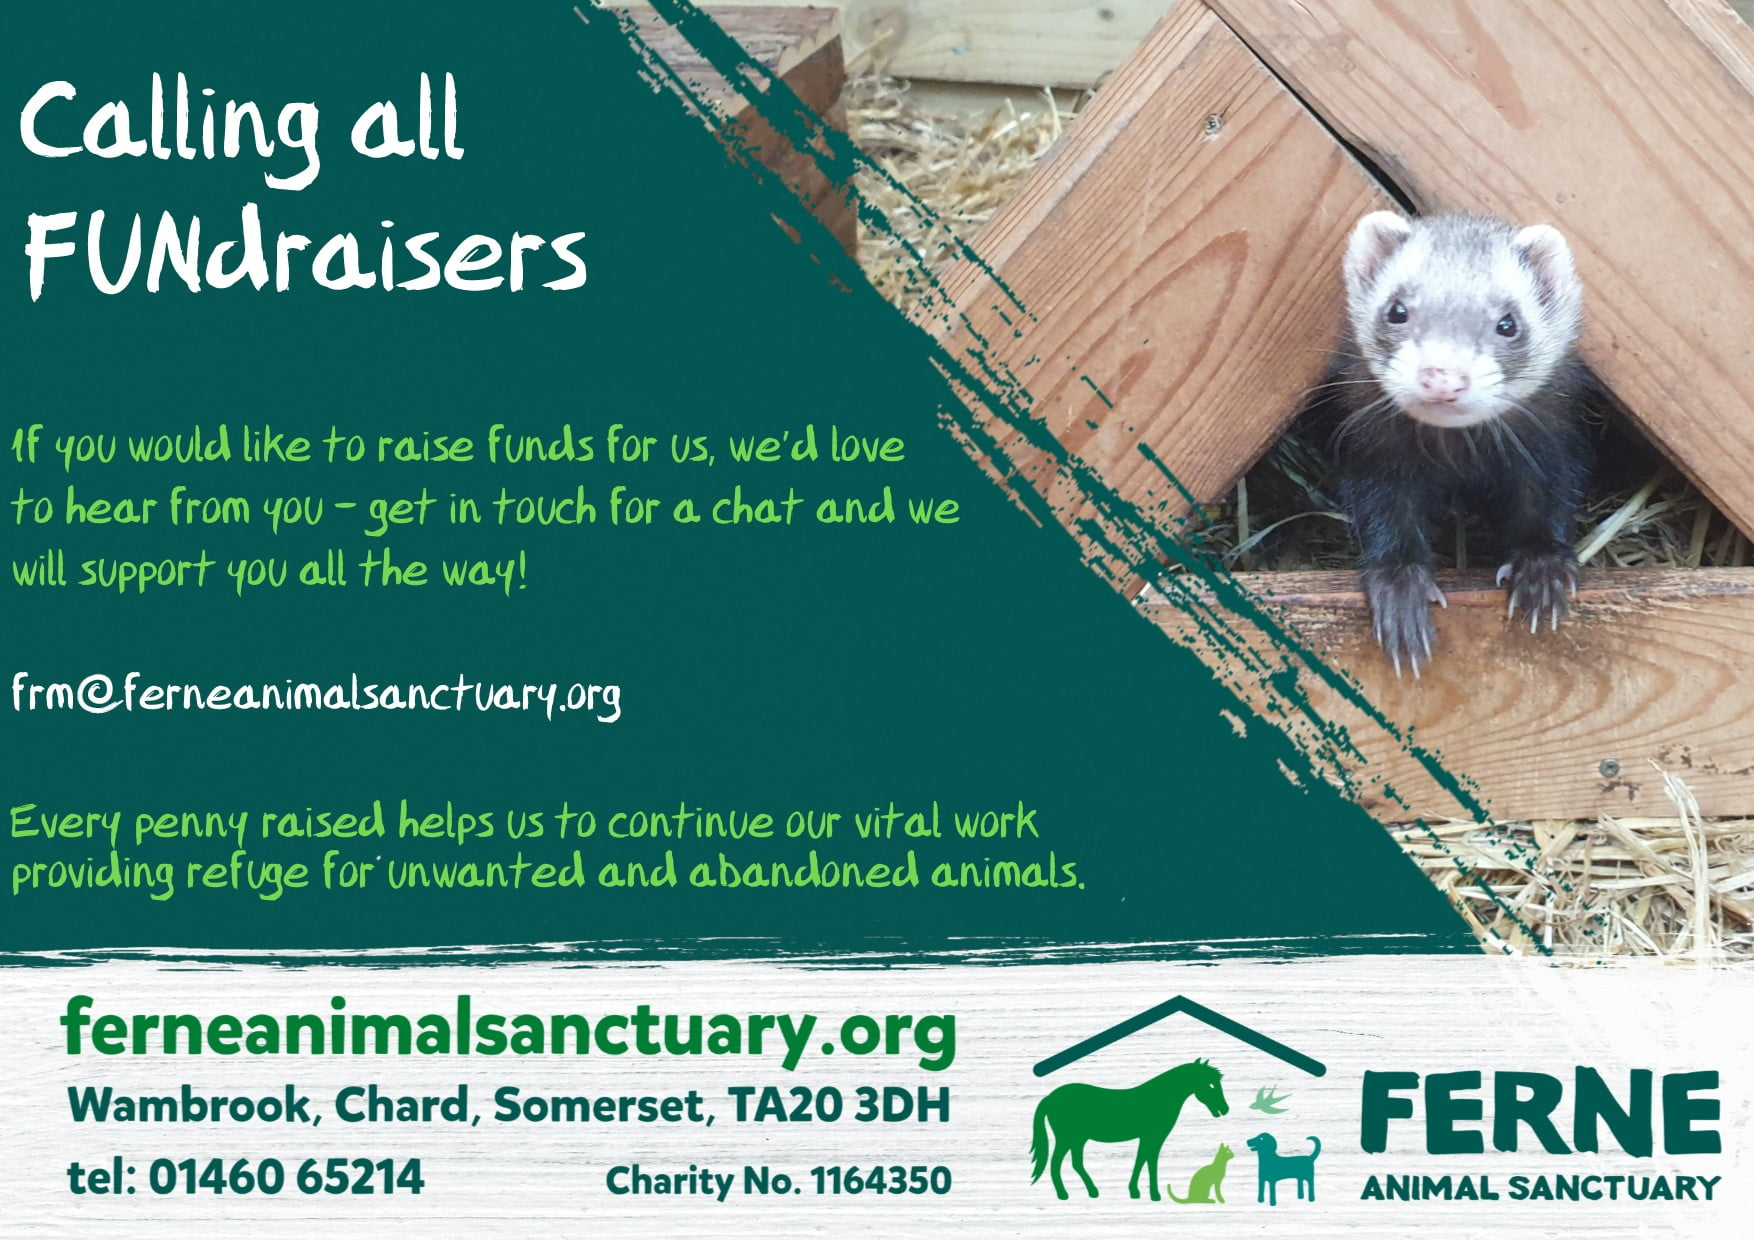 Organise your own fundraising event in aid of Ferne